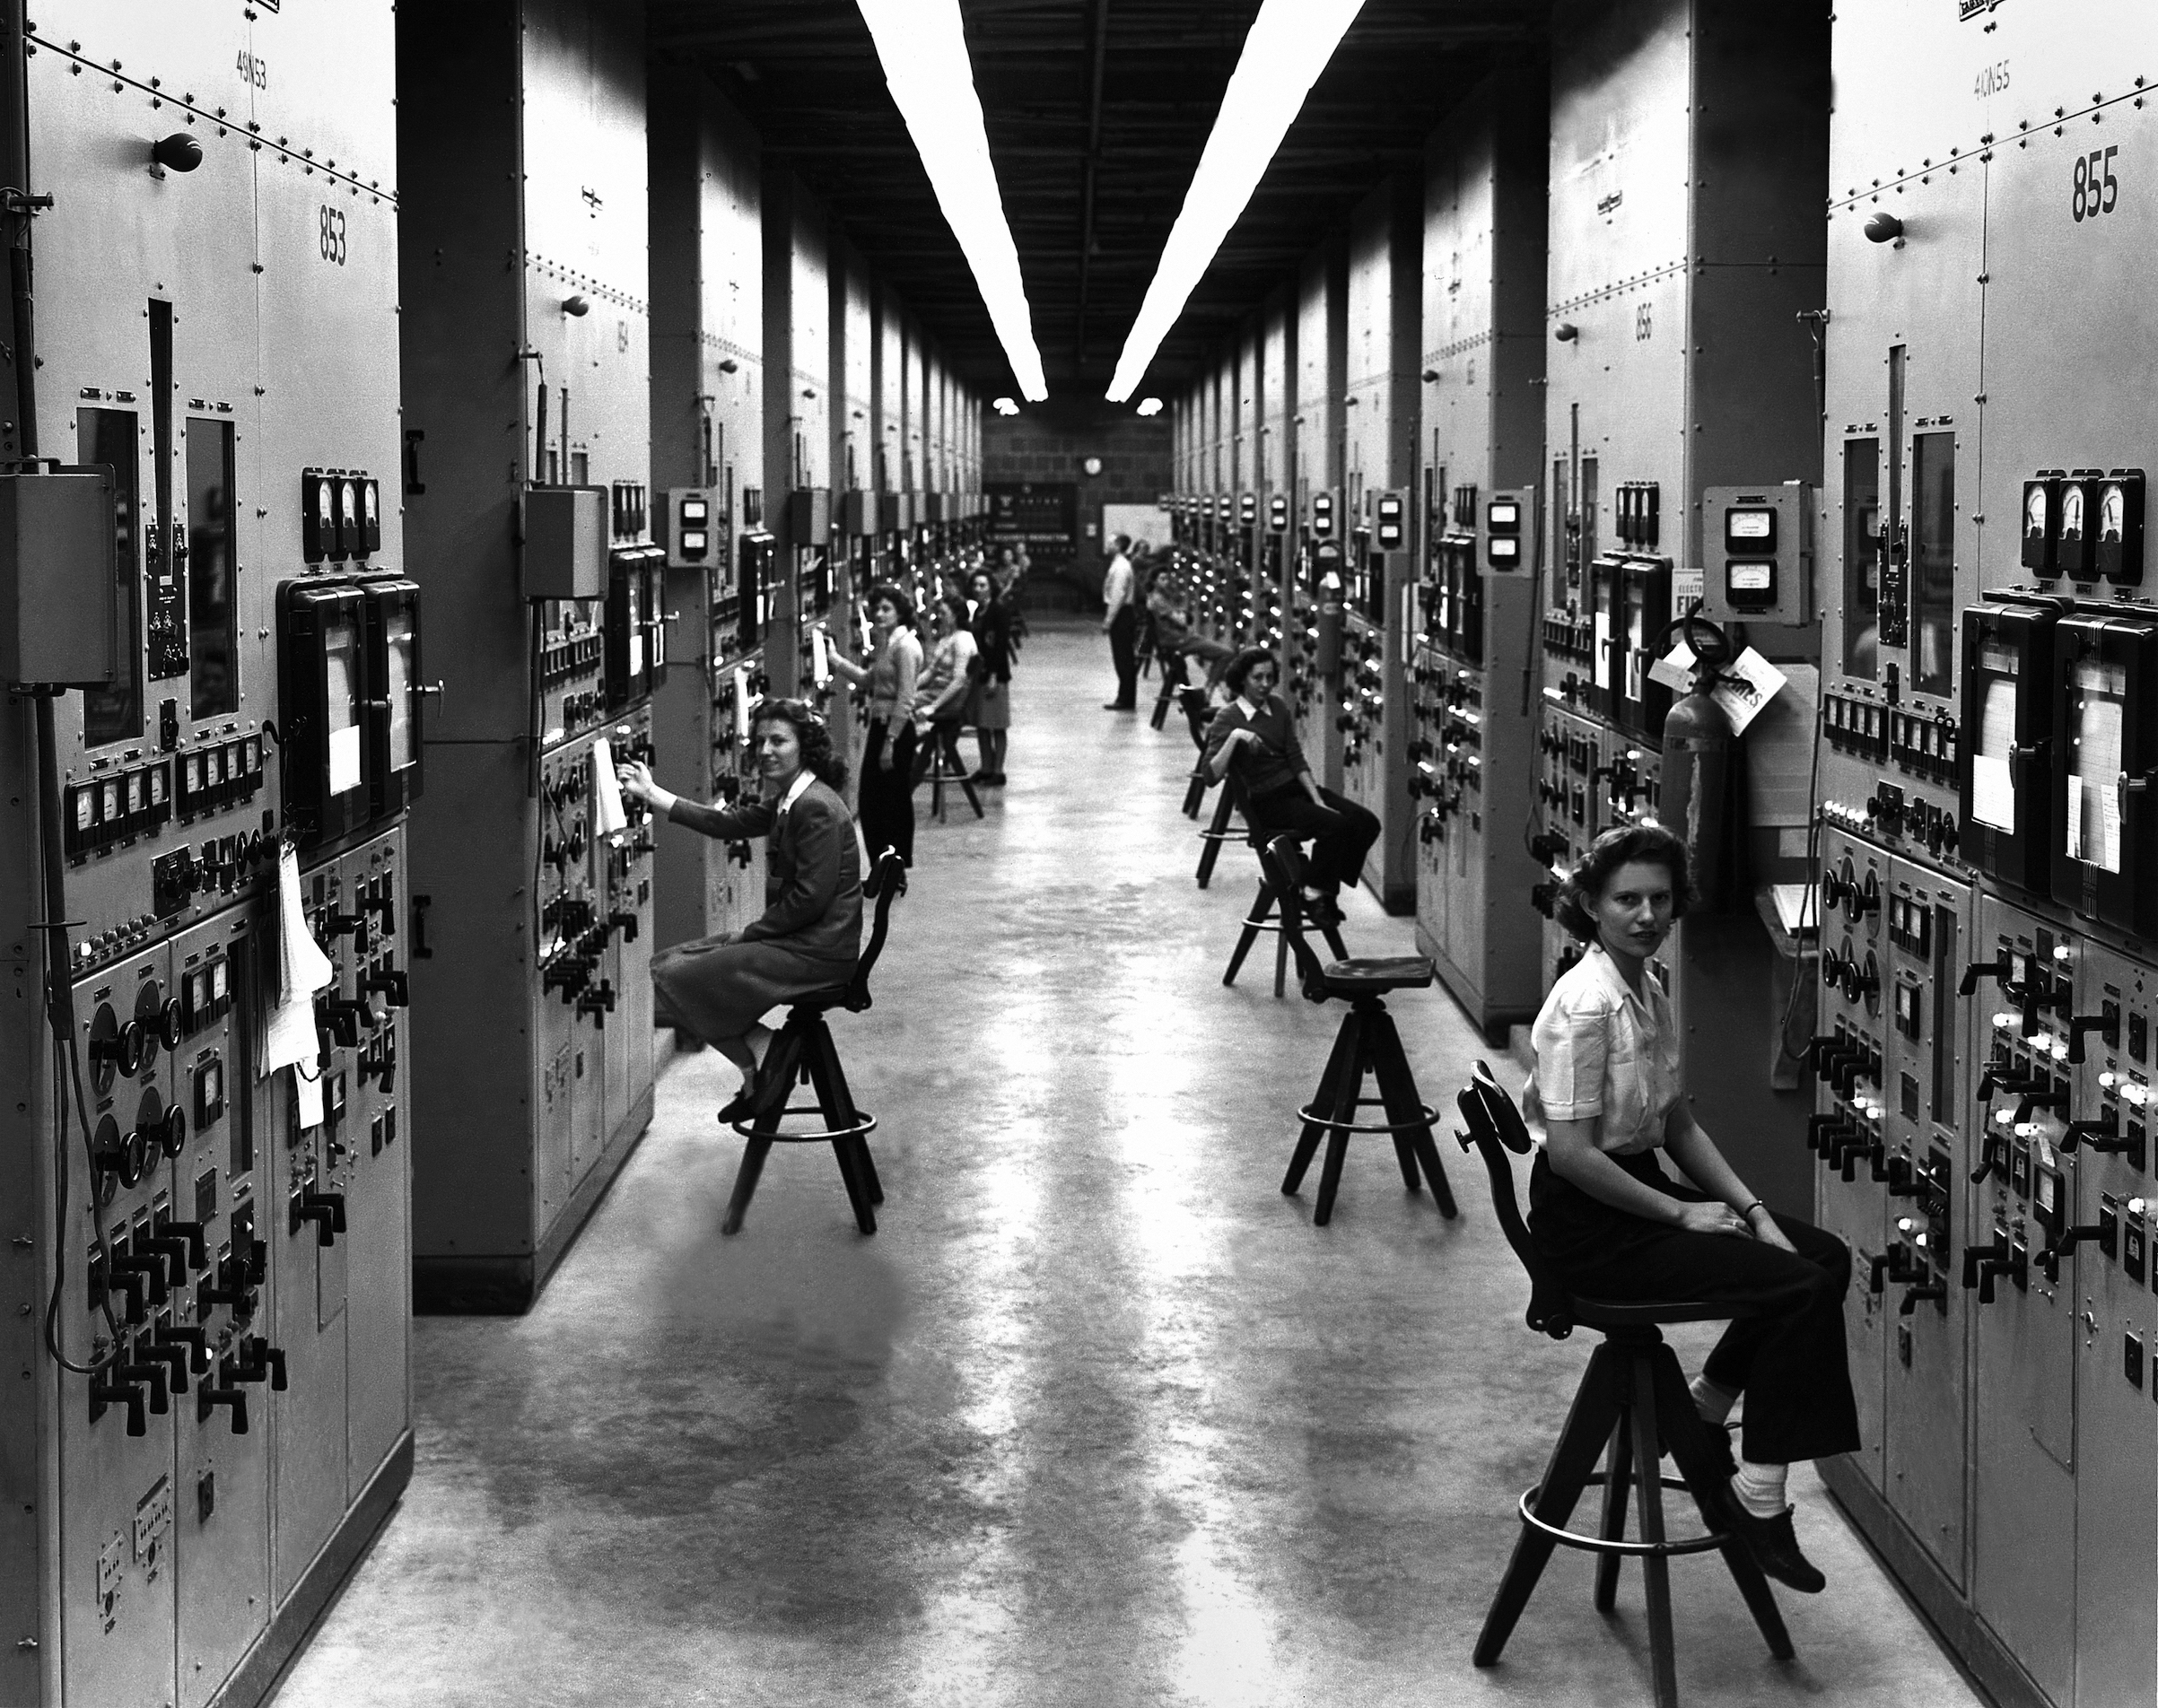 Calutron operators at their panels, in the Y-12 plant at Oak Ridge during World War II. 1944. The calutrons were used to refine uranium ore into fissile material. During the Manhattan Project effort to construct an atomic explosive, workers toiled in secrecy, with no idea to what end their labors were directed. Gladys Owens, the woman seated in the foreground, did not realize what she had been doing until seeing this photo in a public tour of the facility fifty years later. Tennessee, USA.  (Photo by Galerie Bilderwelt/Getty Images)